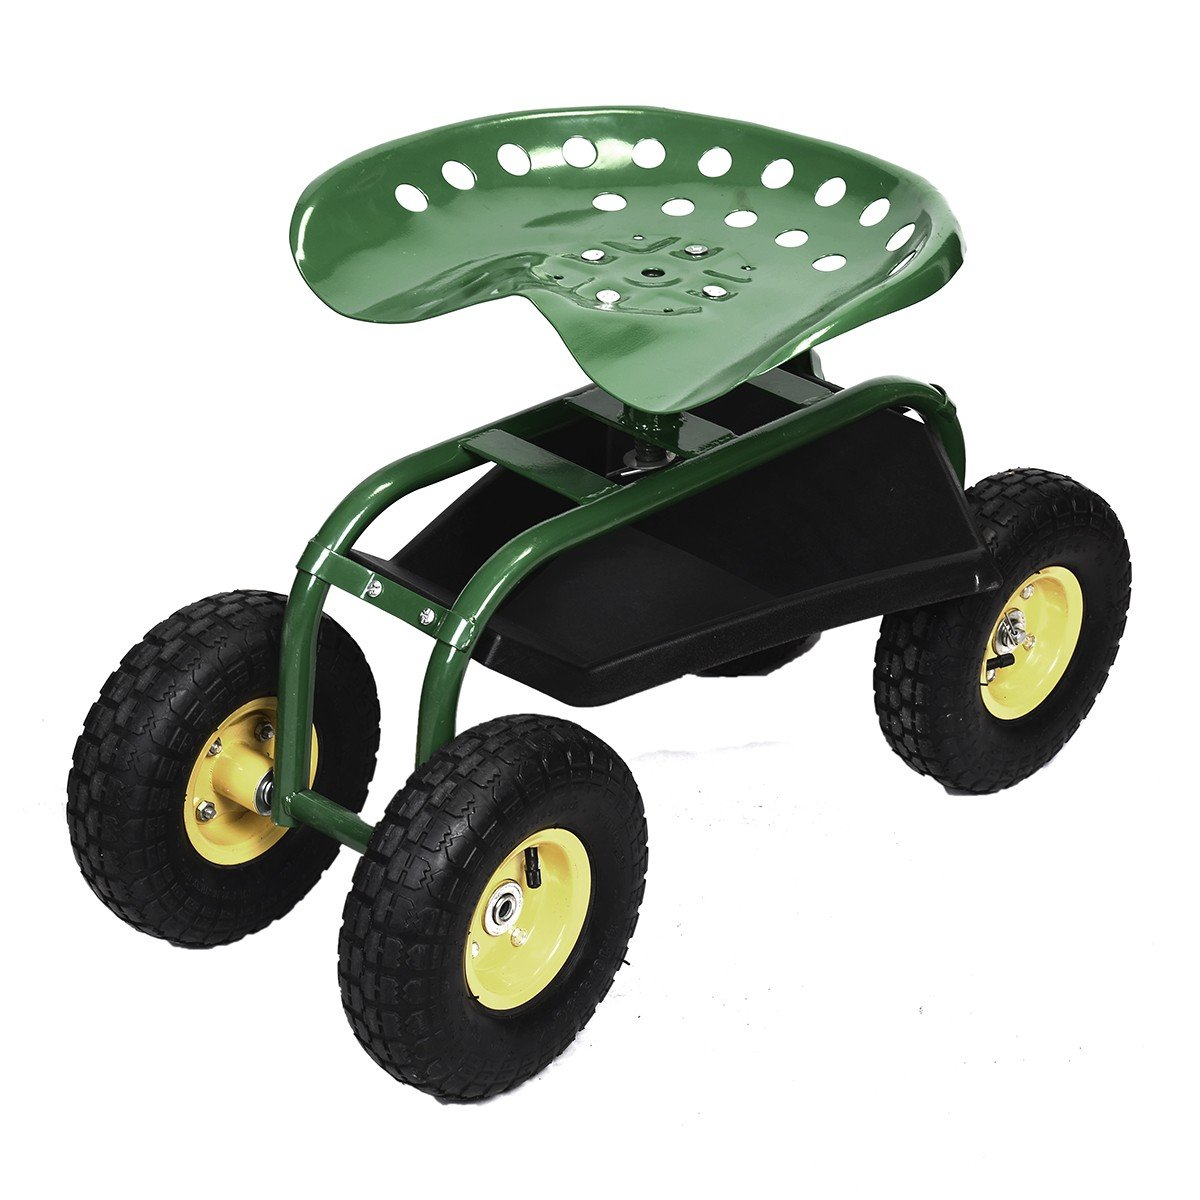 MD Group Garden Cart Utiltity Wagon Green Heavy Duty Tool Tray Adjustable Height Weather Resistant